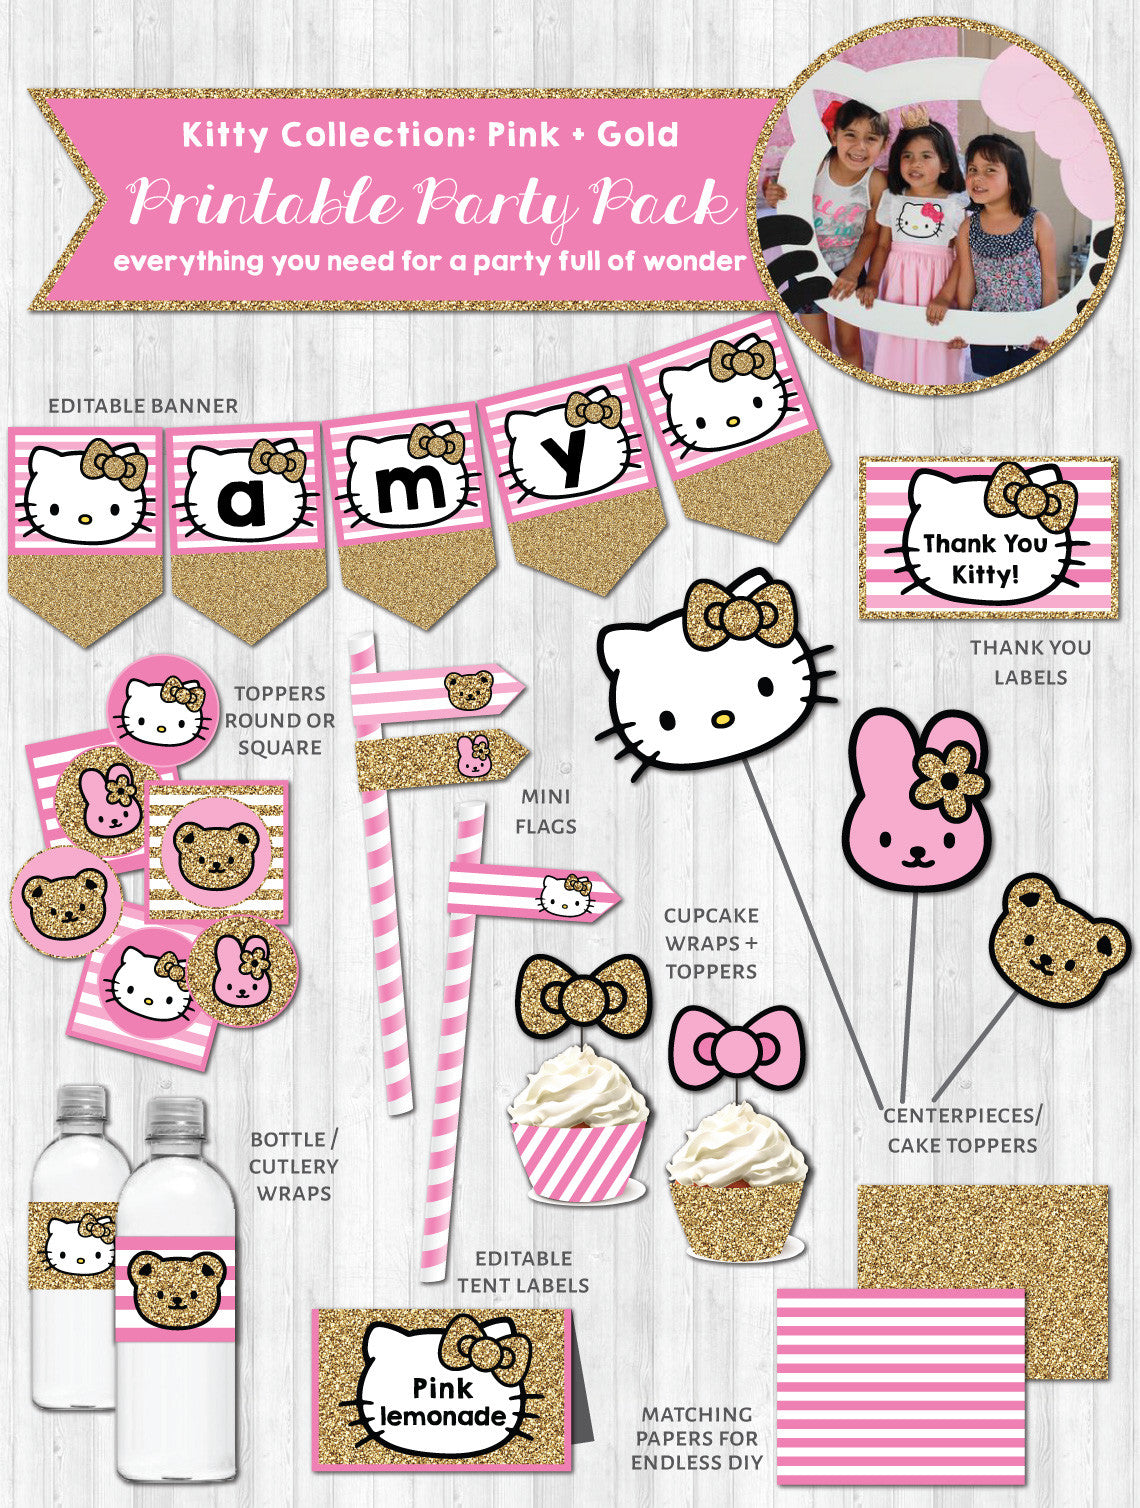 picture regarding Printable Party identify Good day Kitty Social gathering Printable Decor Pack: Purple Gold Glitter